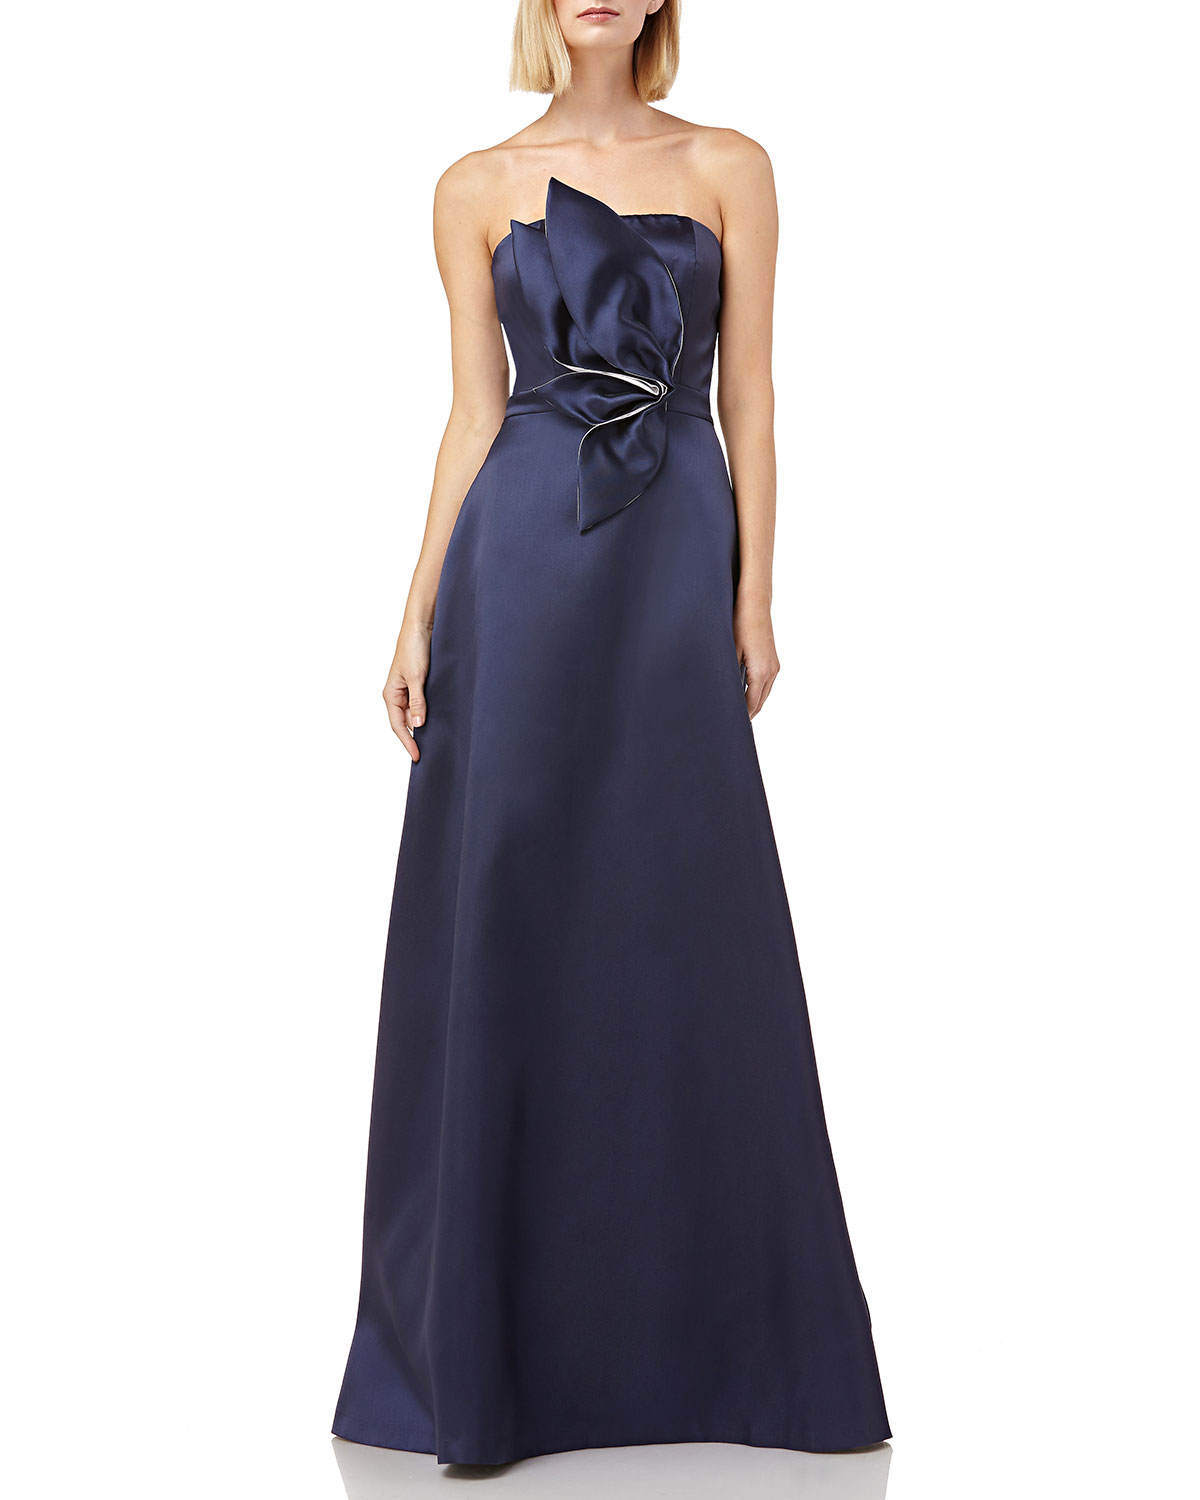 Kay Unger Tops STRAPLESS MIKADO BALL GOWN W/ 3D FLOWER DETAIL & POCKETS